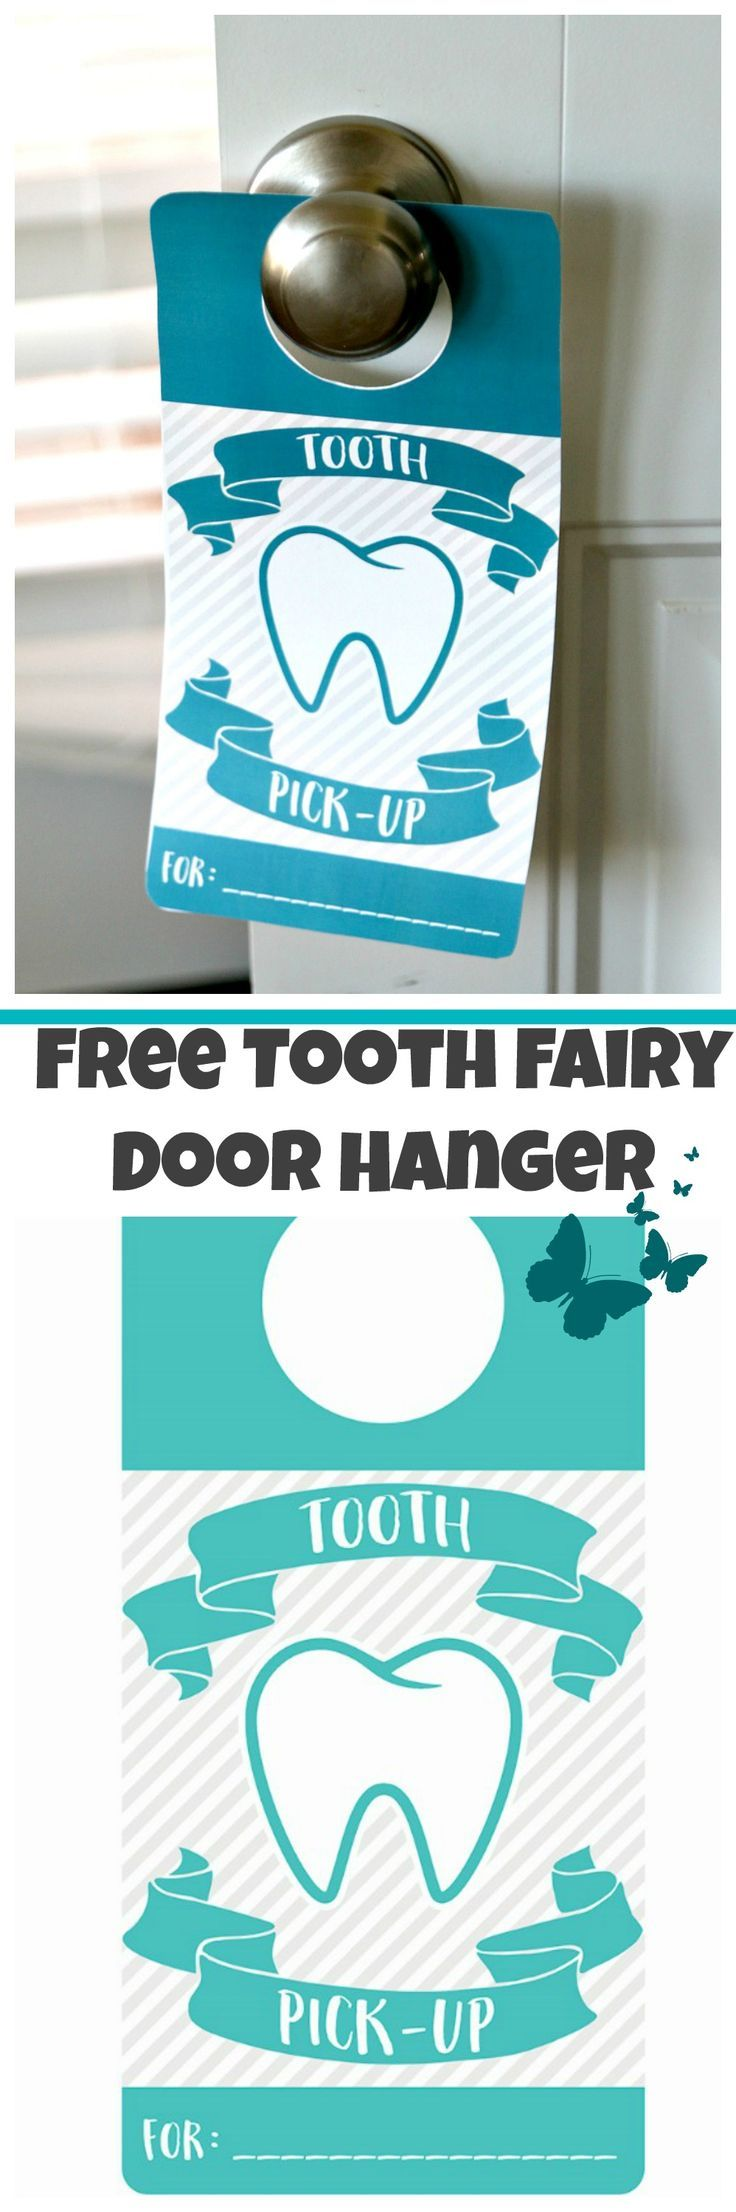 Tooth Fairy Door Hanger, FREE PRINTABLE to notify the tooth fairy where to grab her tooth!